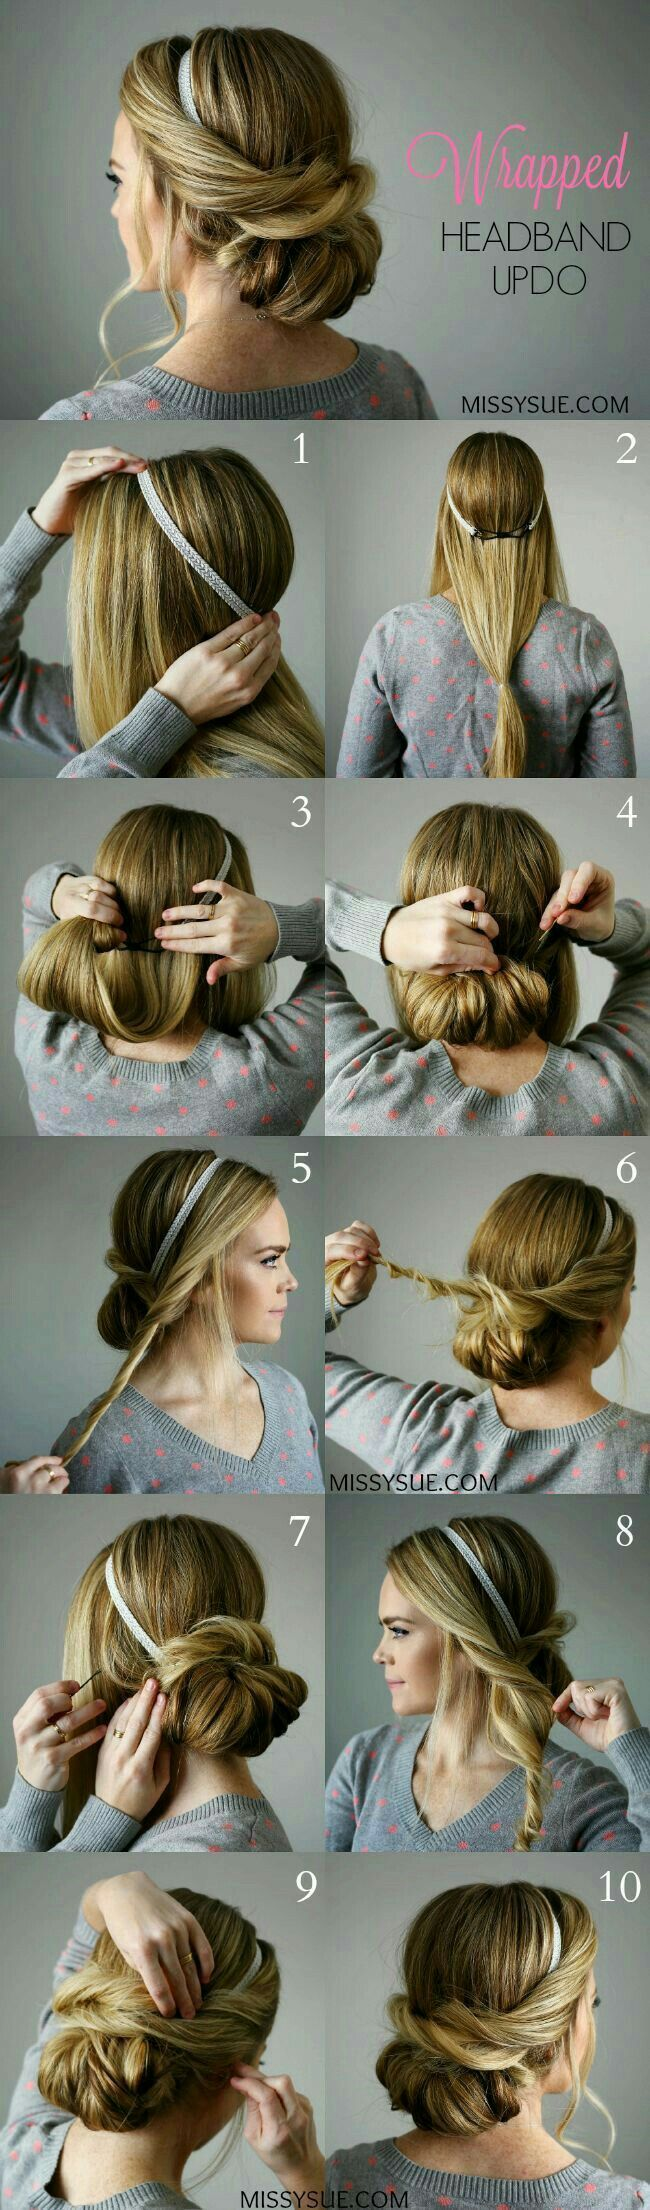 #hairtutorial #bridesmaid #boho #easy #updo